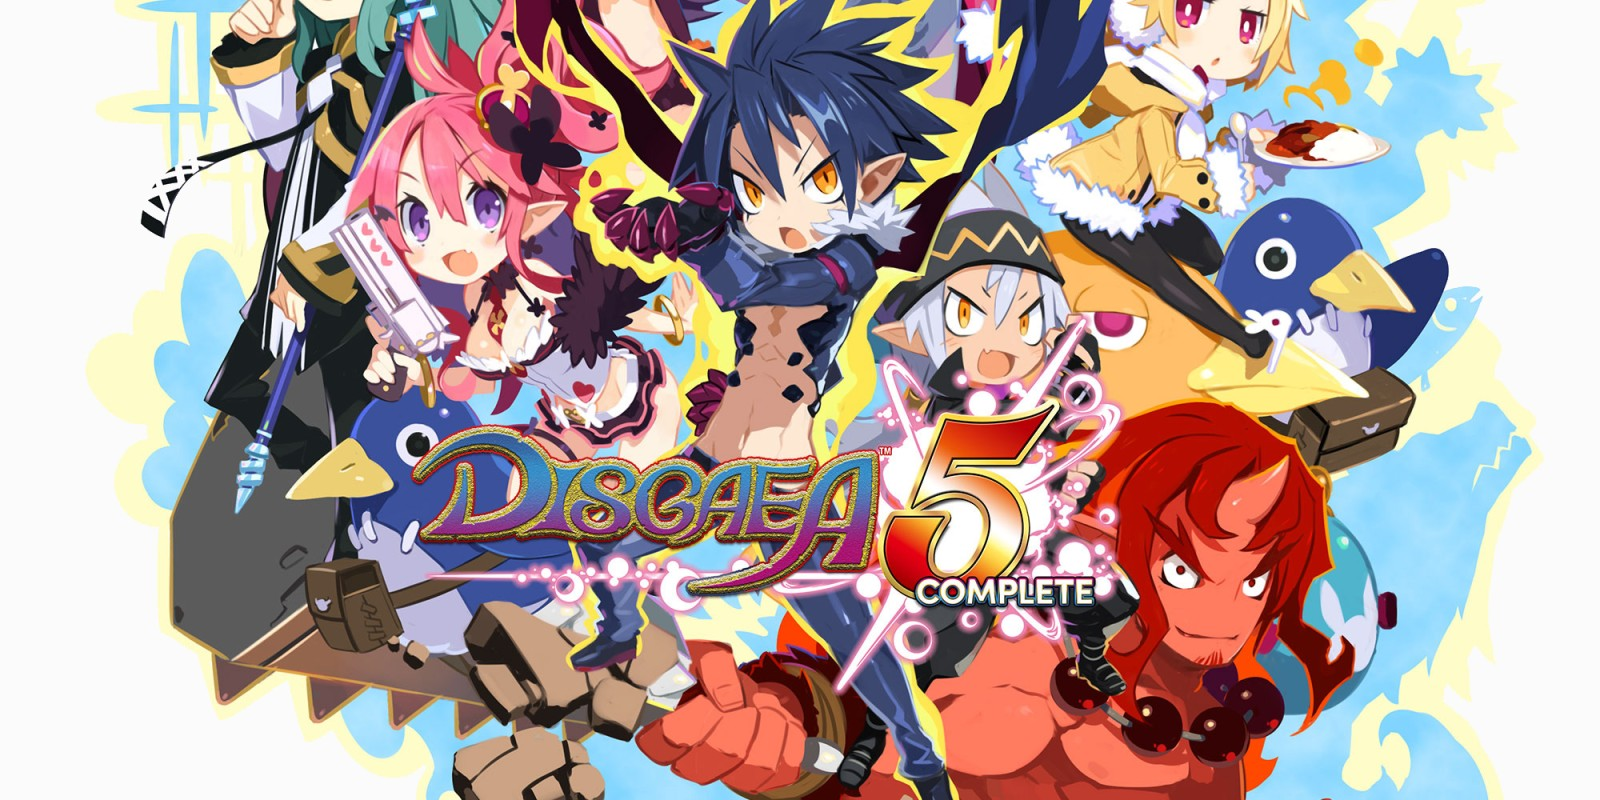 H2x1_NSwitch_Disgaea5Complete_image1600w.jpg